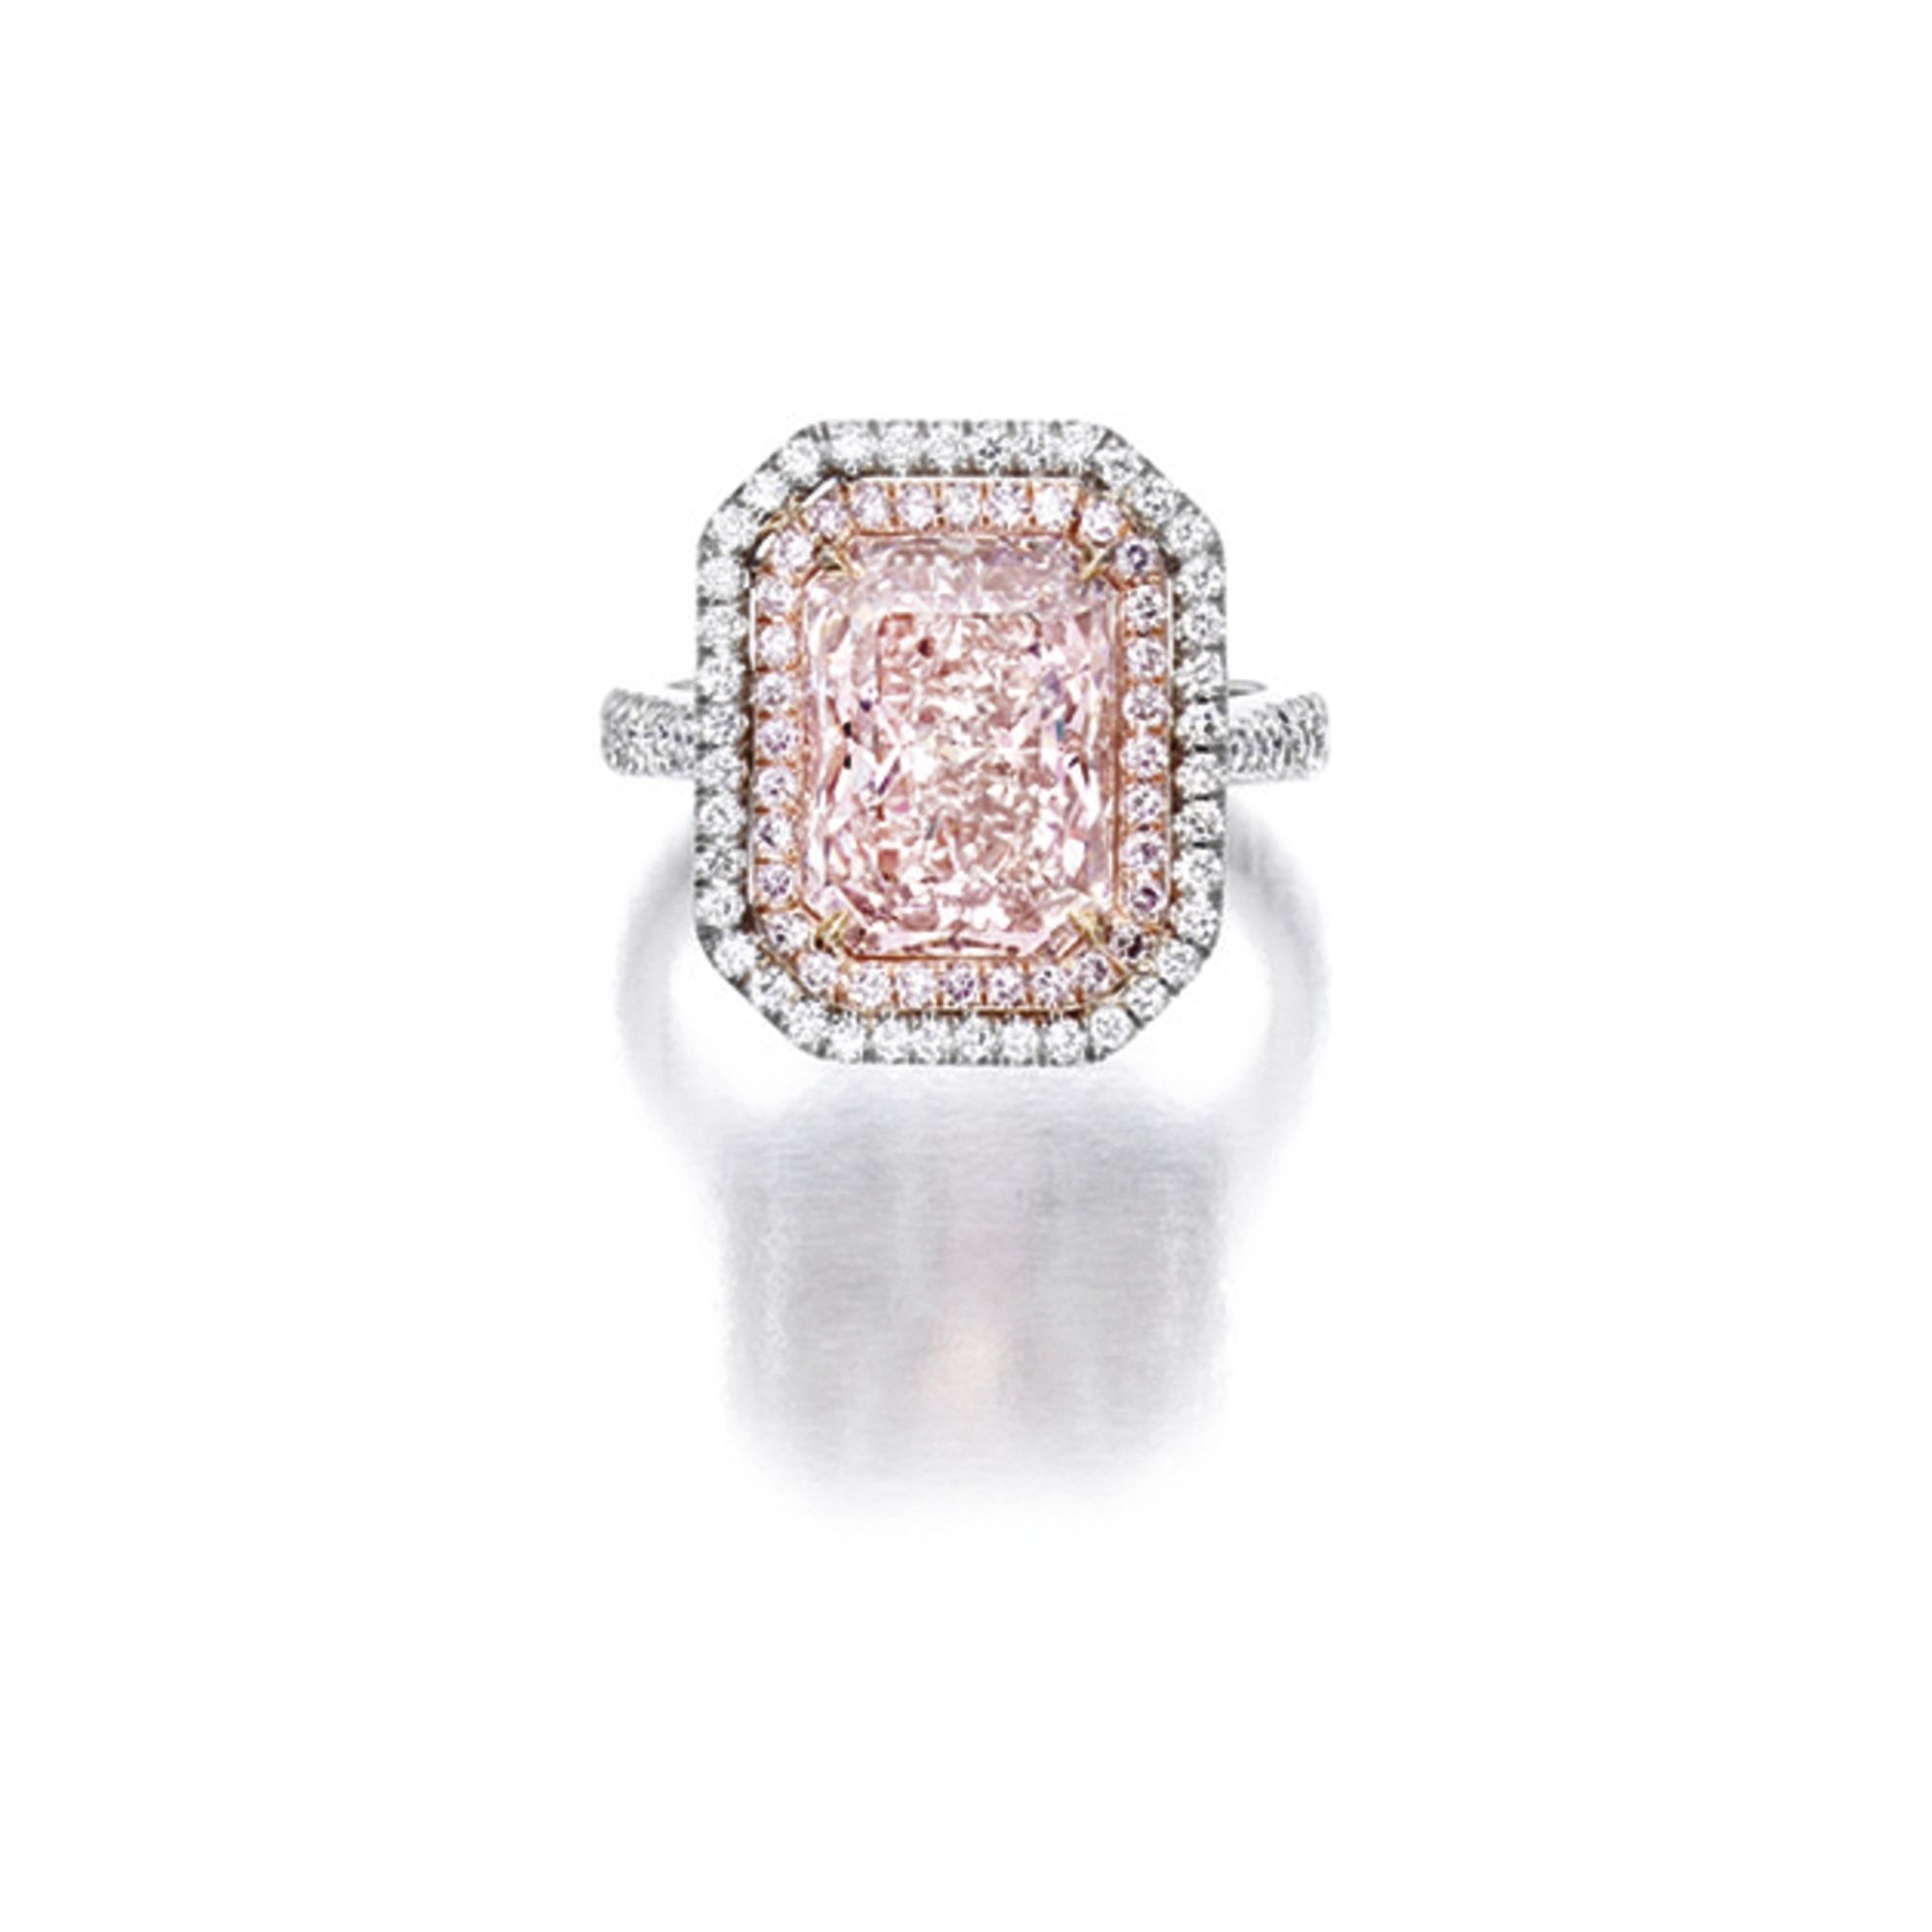 adobestock rings diamonds blog clippir diamond engagement pink luxury los loose